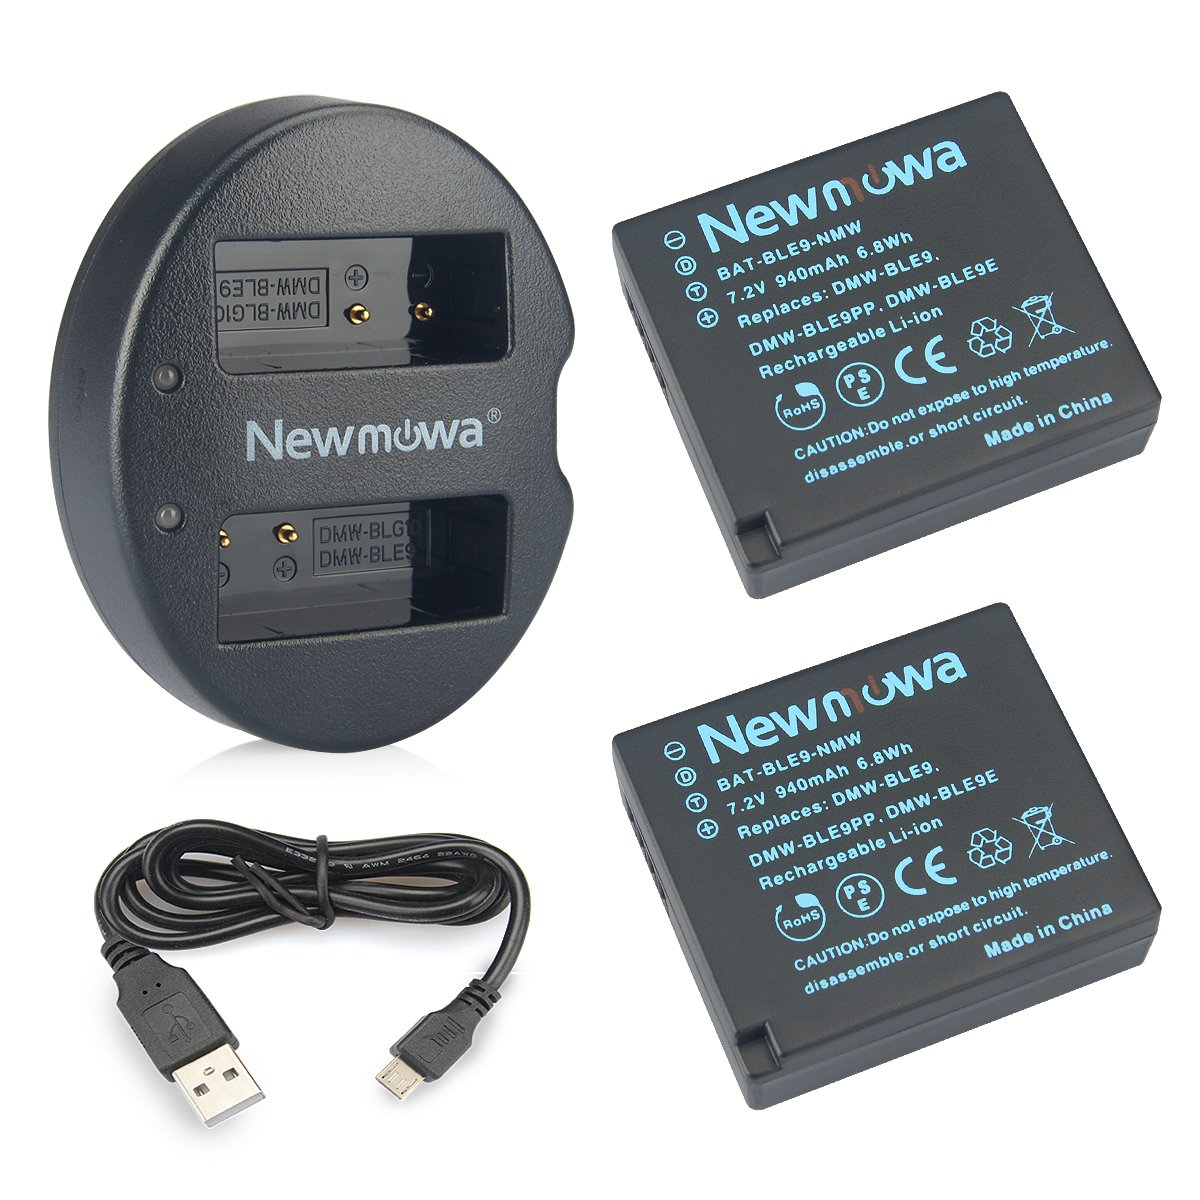 DMW-BLE9 Newmowa Battery (2 pack) and Dual USB Charger for Panasonic DMW-BLE9, DMW-BLG10 and Panasonic Lumix DMC-ZS60, DMC-ZS100, DMC-LX100, DMC-GF3, DMC-GF5, DMC-GF6, DMC-GX7, DMC-GX85